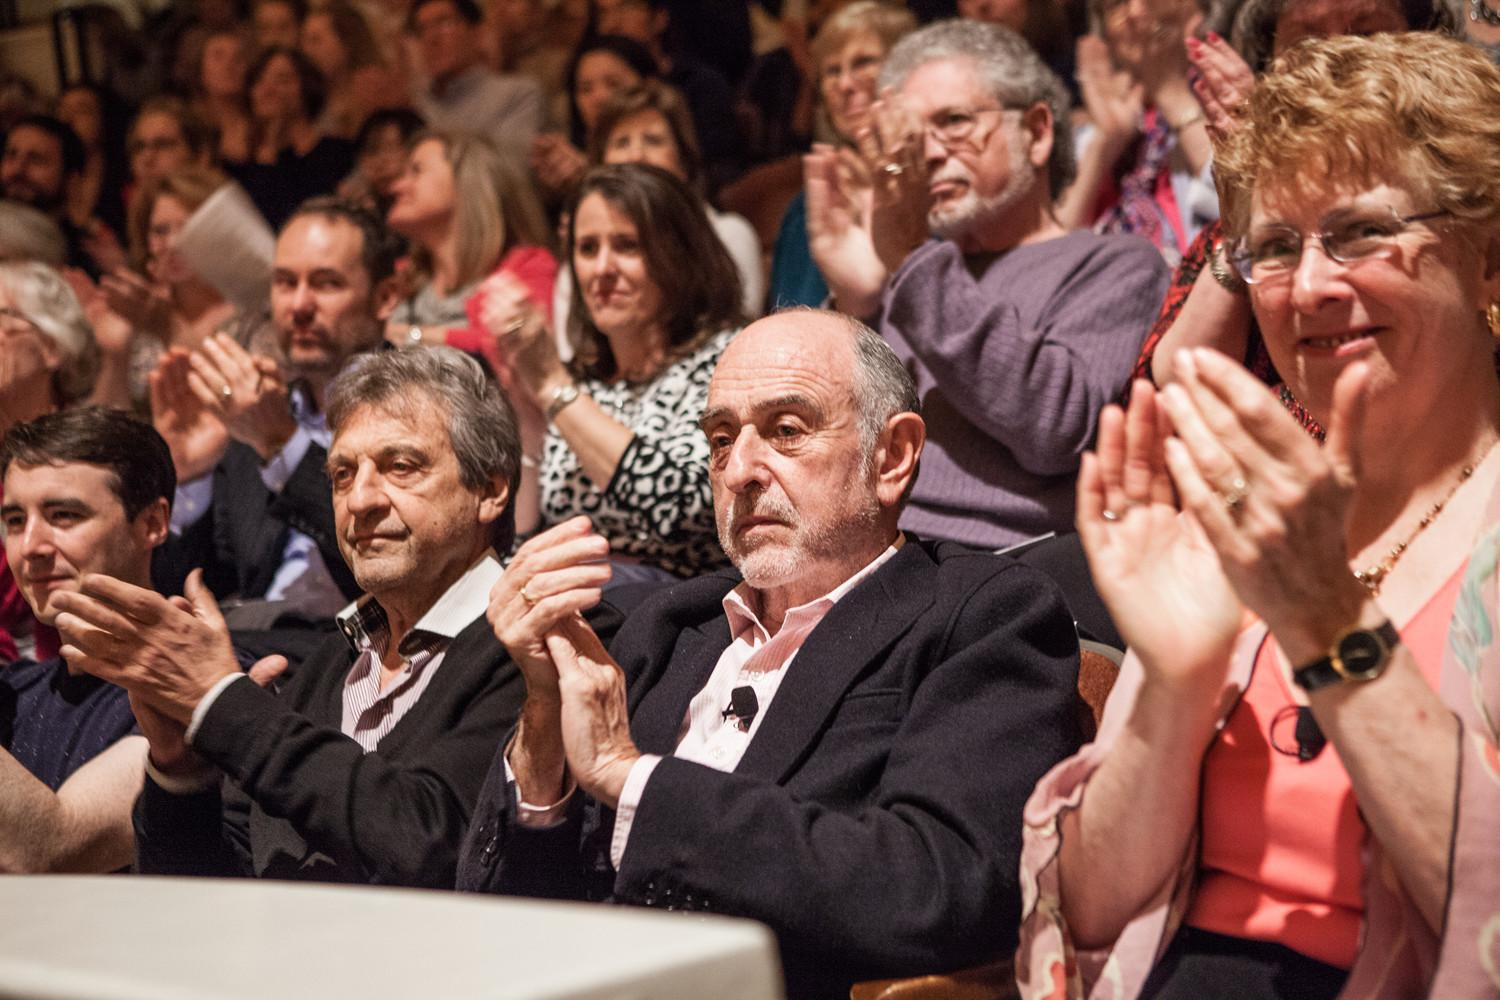 Alain Boublil, center left, and Claude-Michel Schönberg, center right, applaud a performance of their music. (Photos by Çoe Sweet)